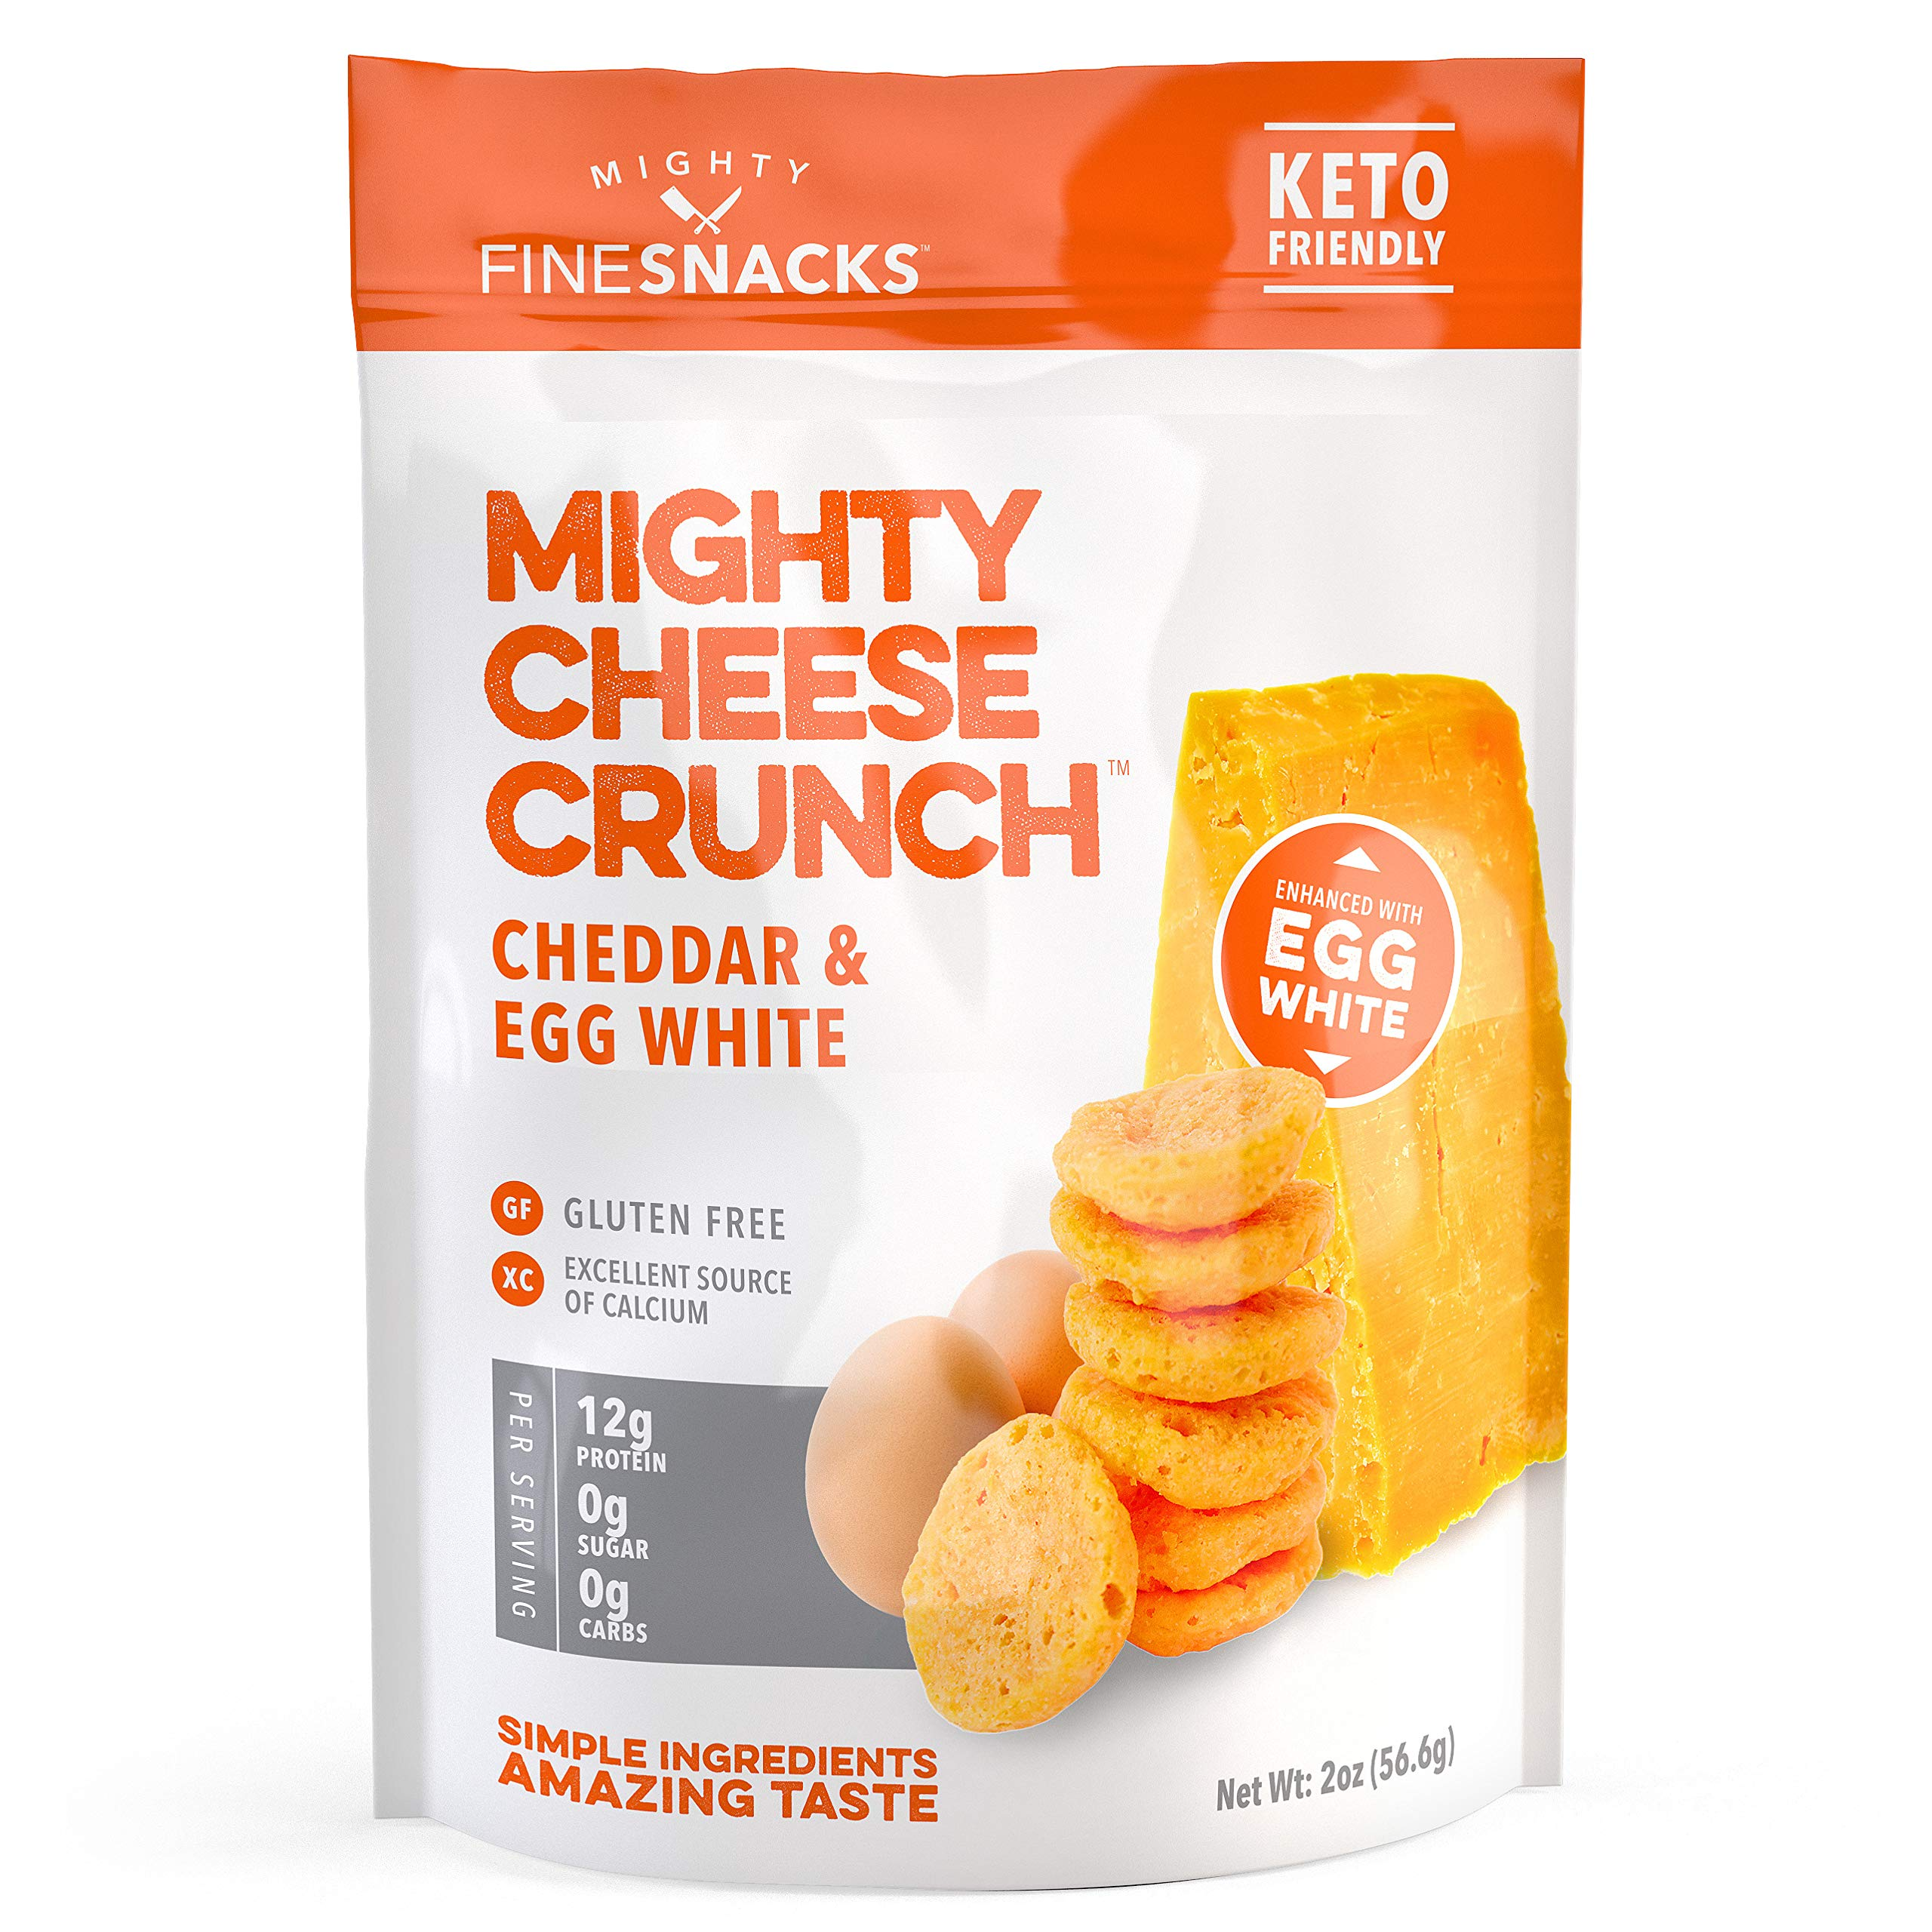 Cheddar & Egg White Cheese Crisps - Low Carb, Gluten Free, High Protein Healthy Crunchy Cheese – Savory, Keto & Diet Friendly Baked Cheese with Natural Ingredients, Pack of 3, 2oz Bags